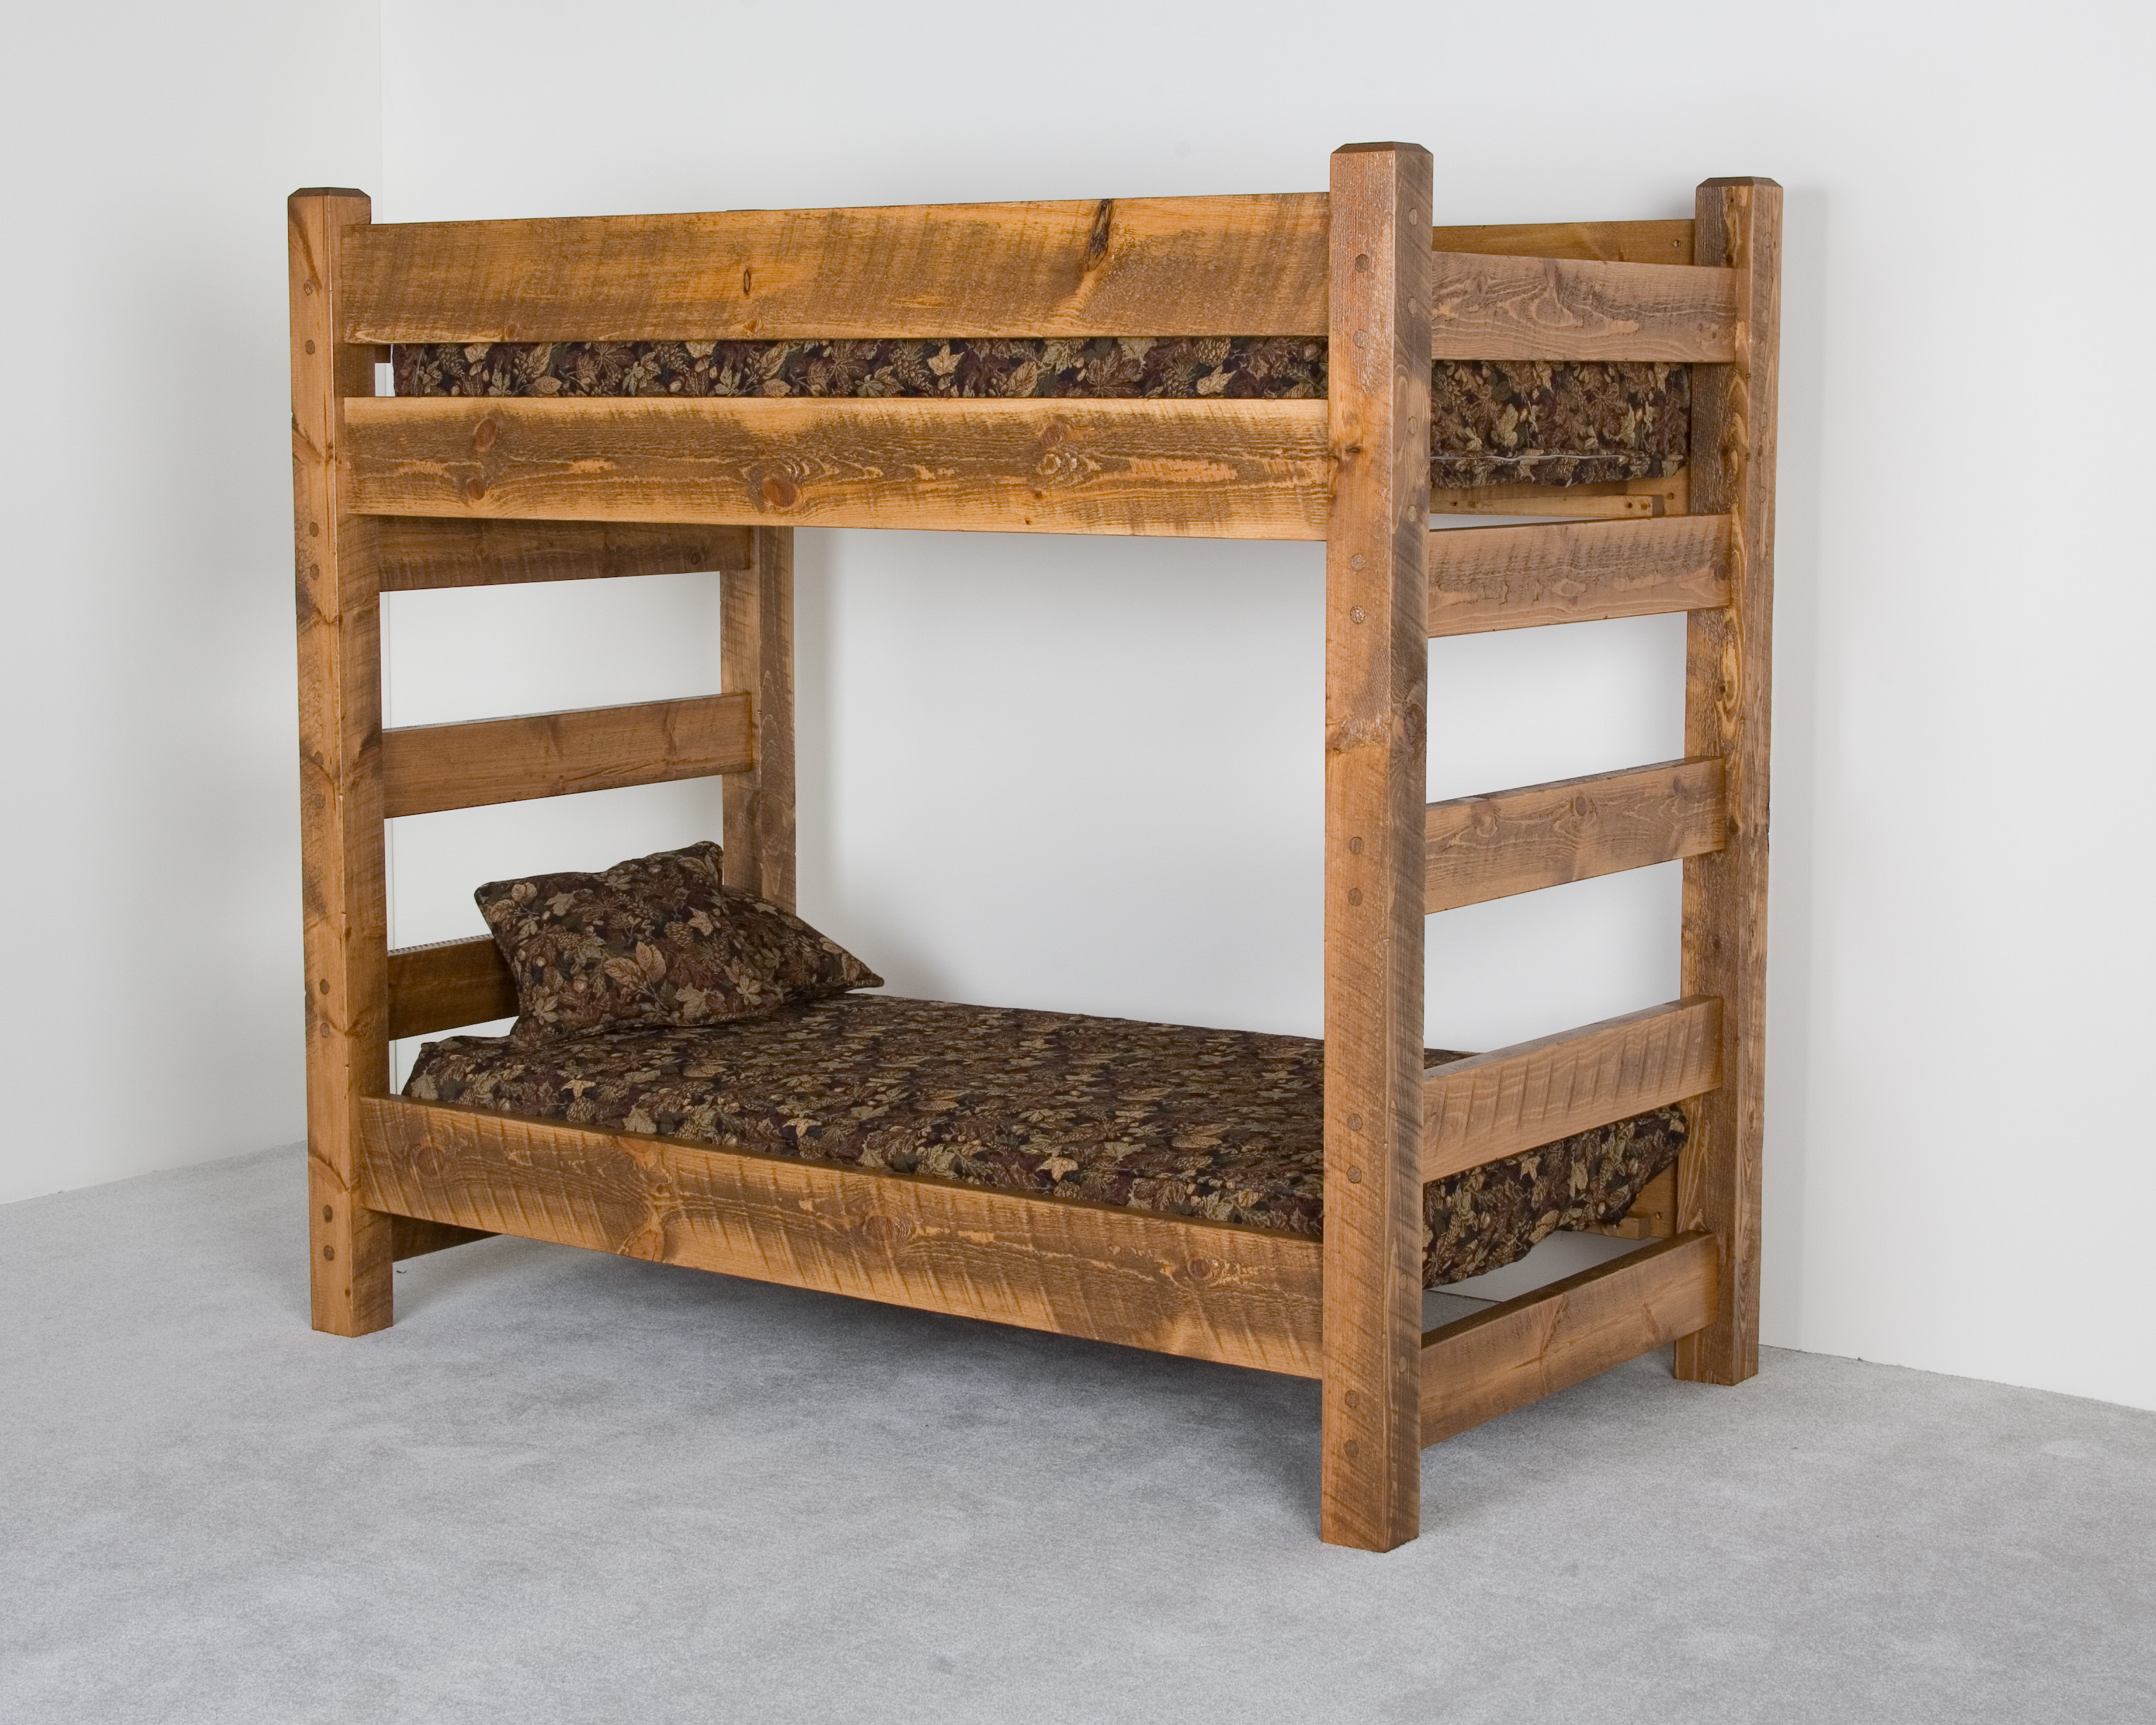 Workshop design wood log bedroom furniture plans for Furniture 123 bunk beds